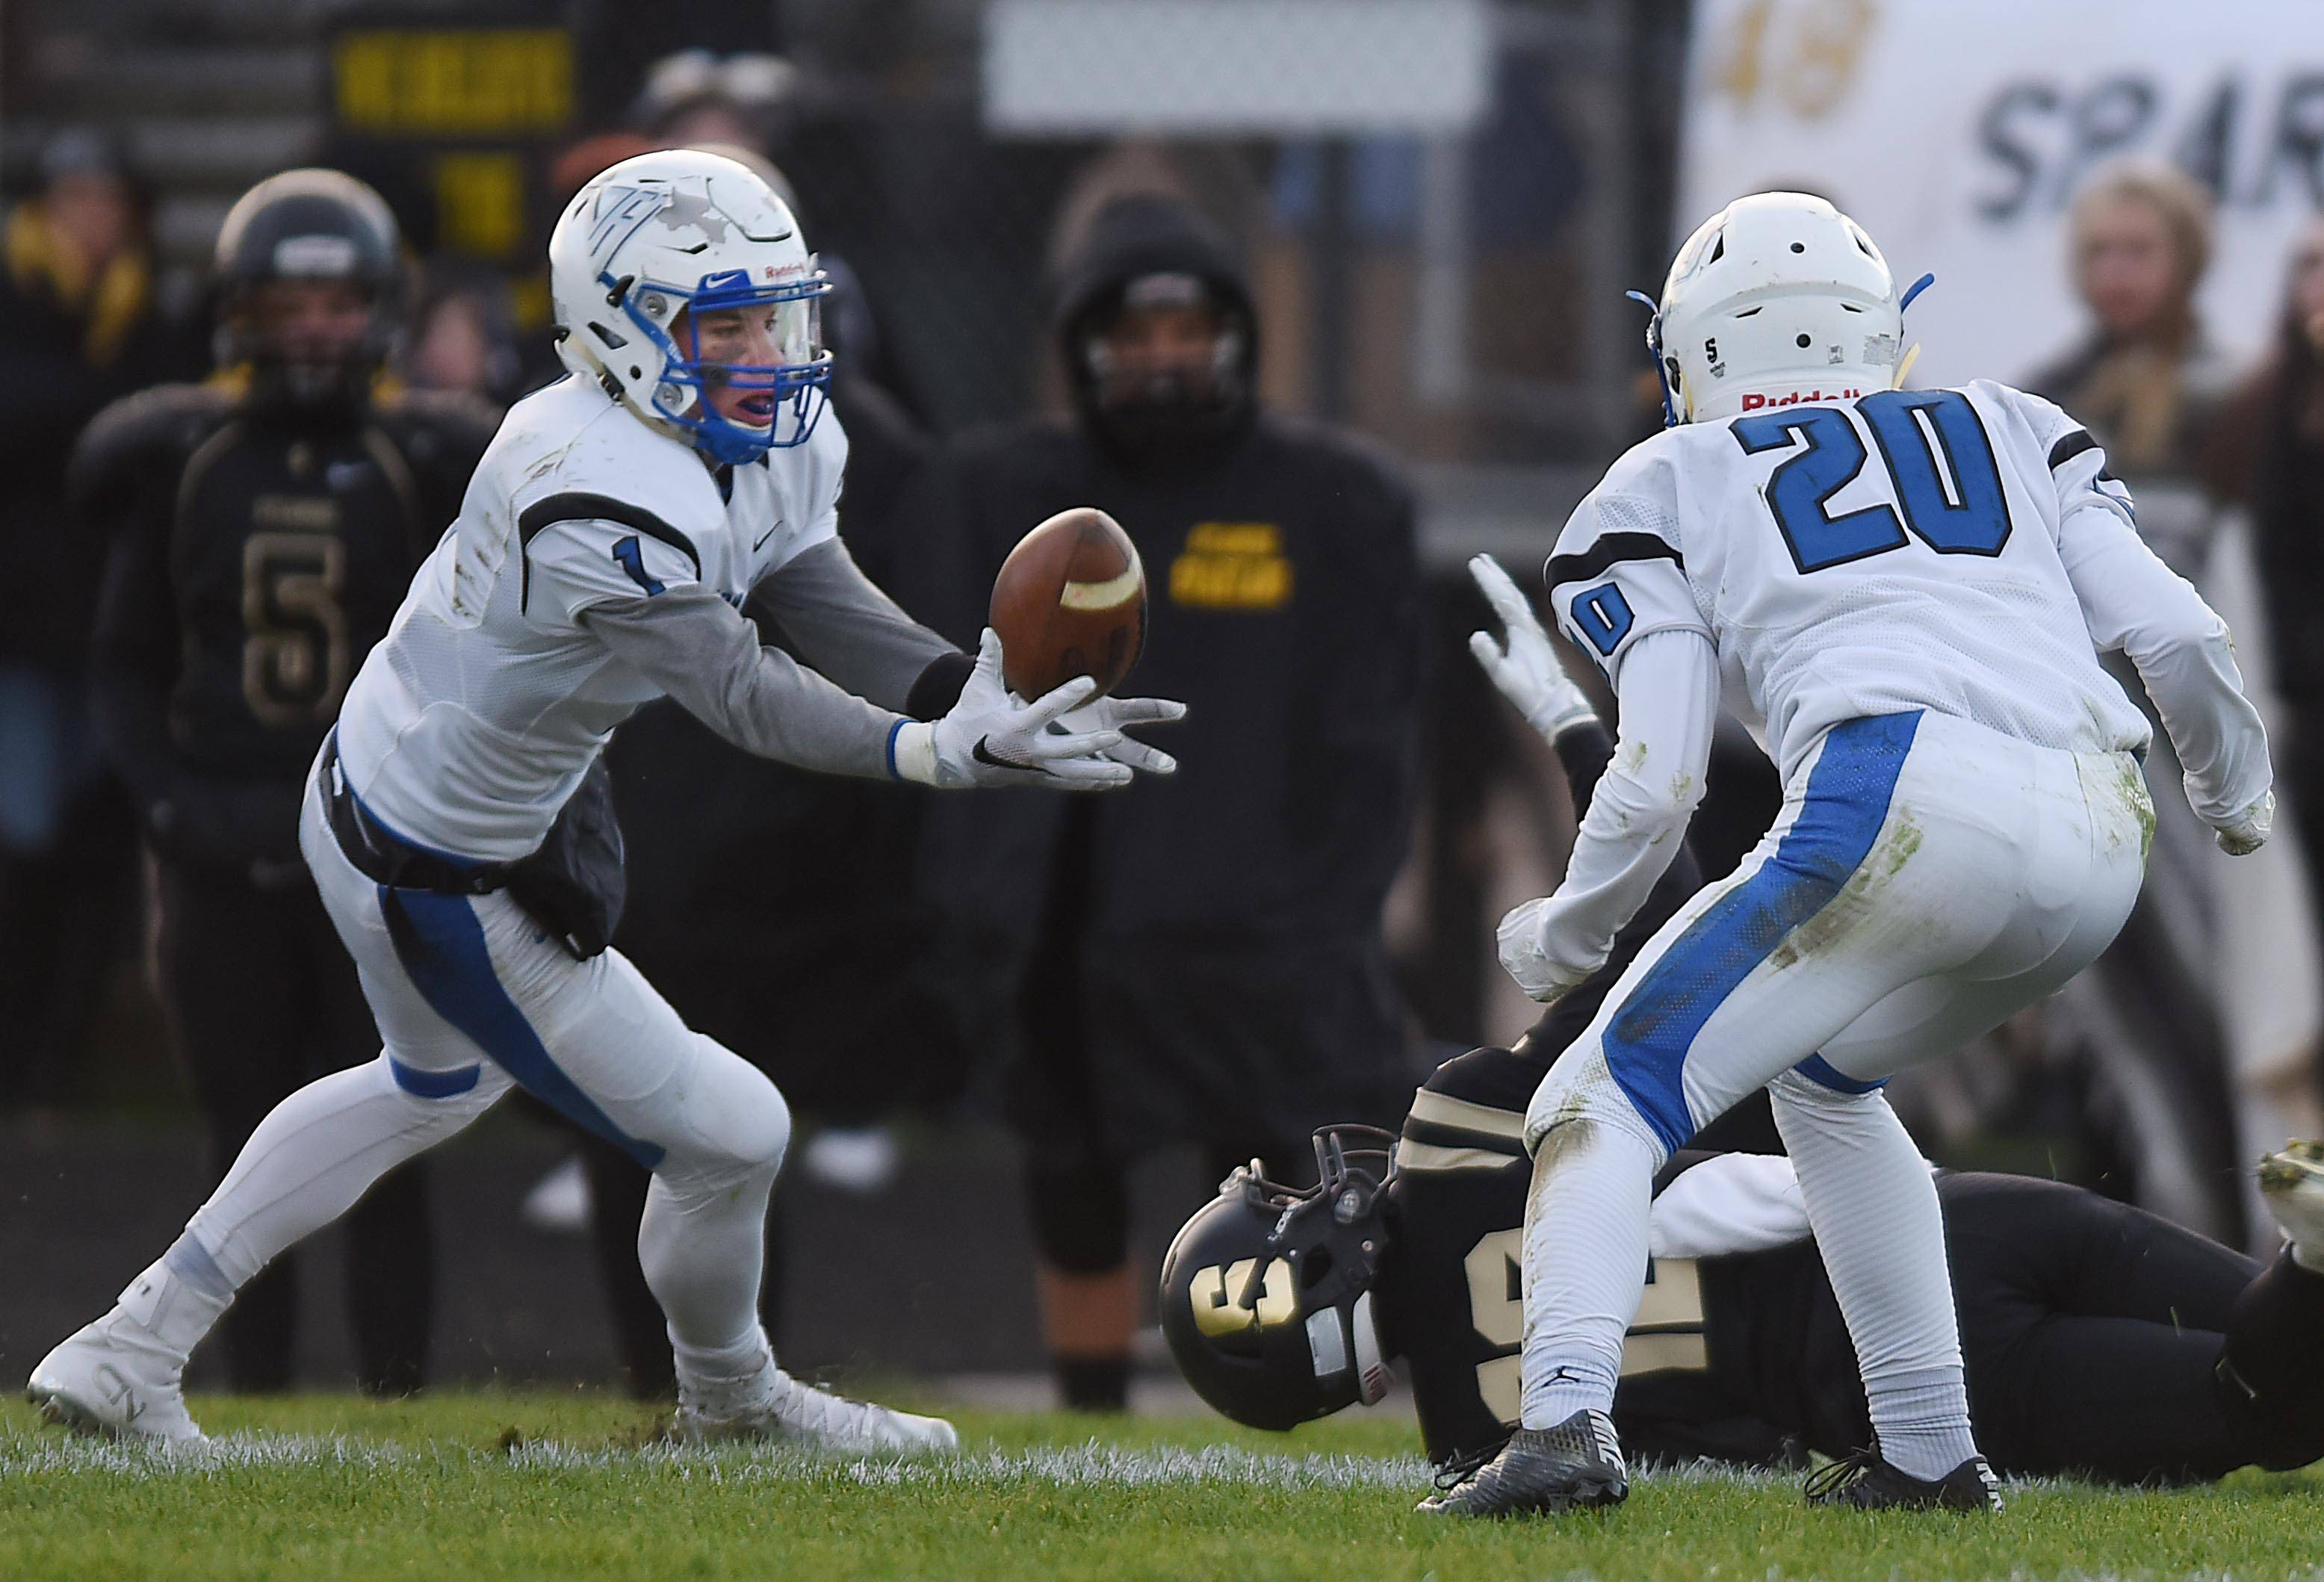 Vernon Hills' Chris Mariella grabs the live ball out of the air after teammate Jake Morris, right, tipped the pass away from Sycamore's Robert Cole, on the ground, in the final minutes last Saturday at Sycamore.